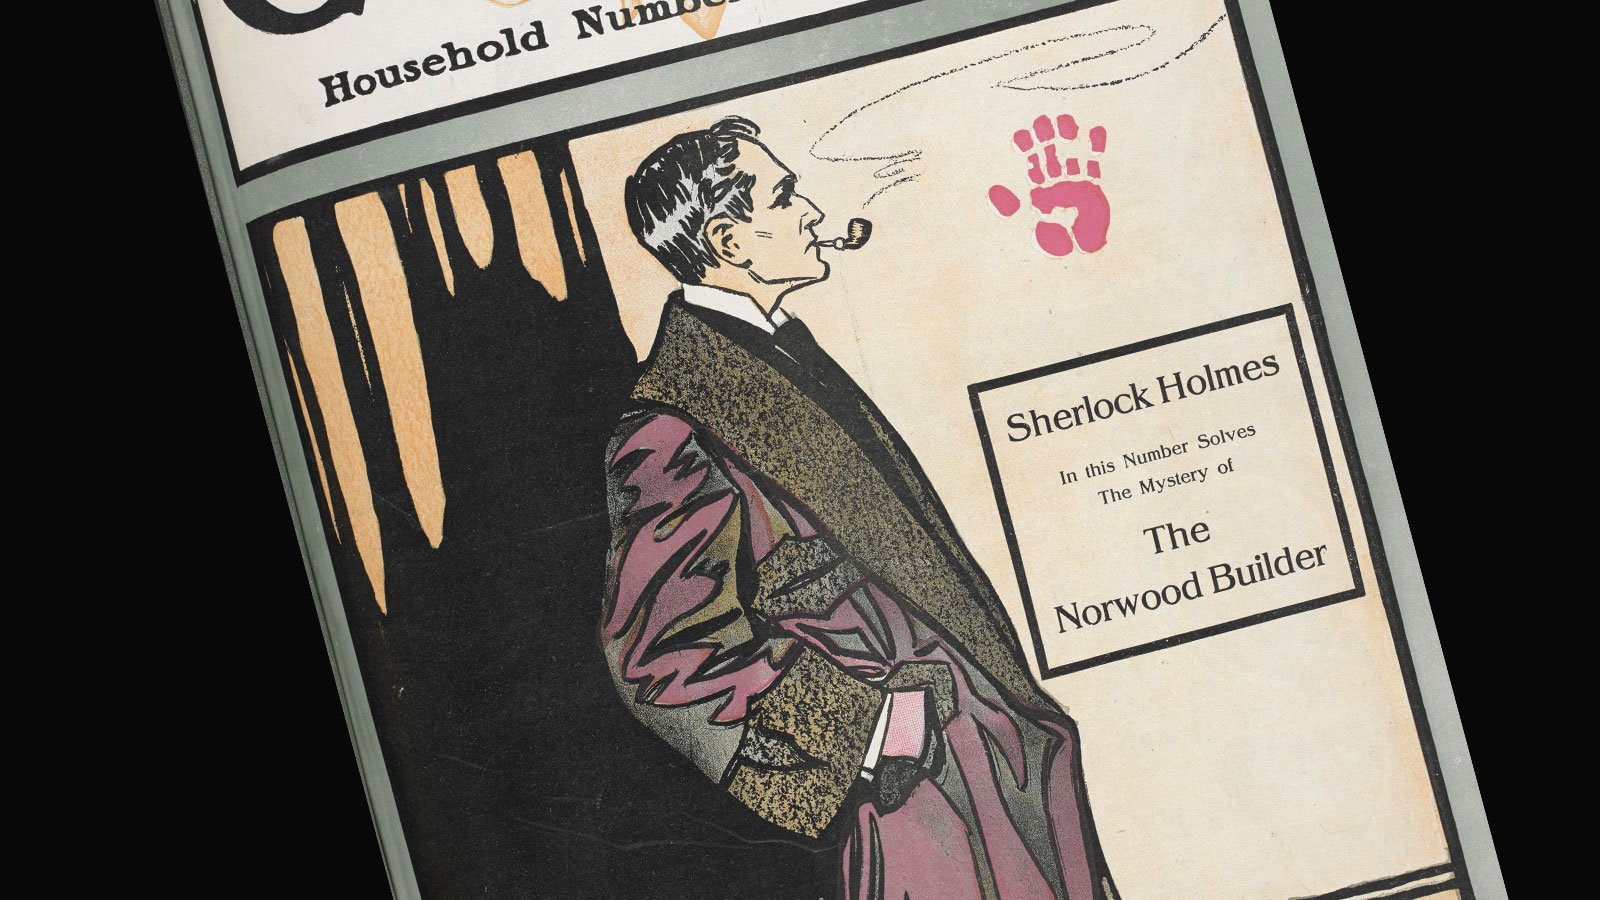 Sherlock Holmes, the world's most famous literary detective